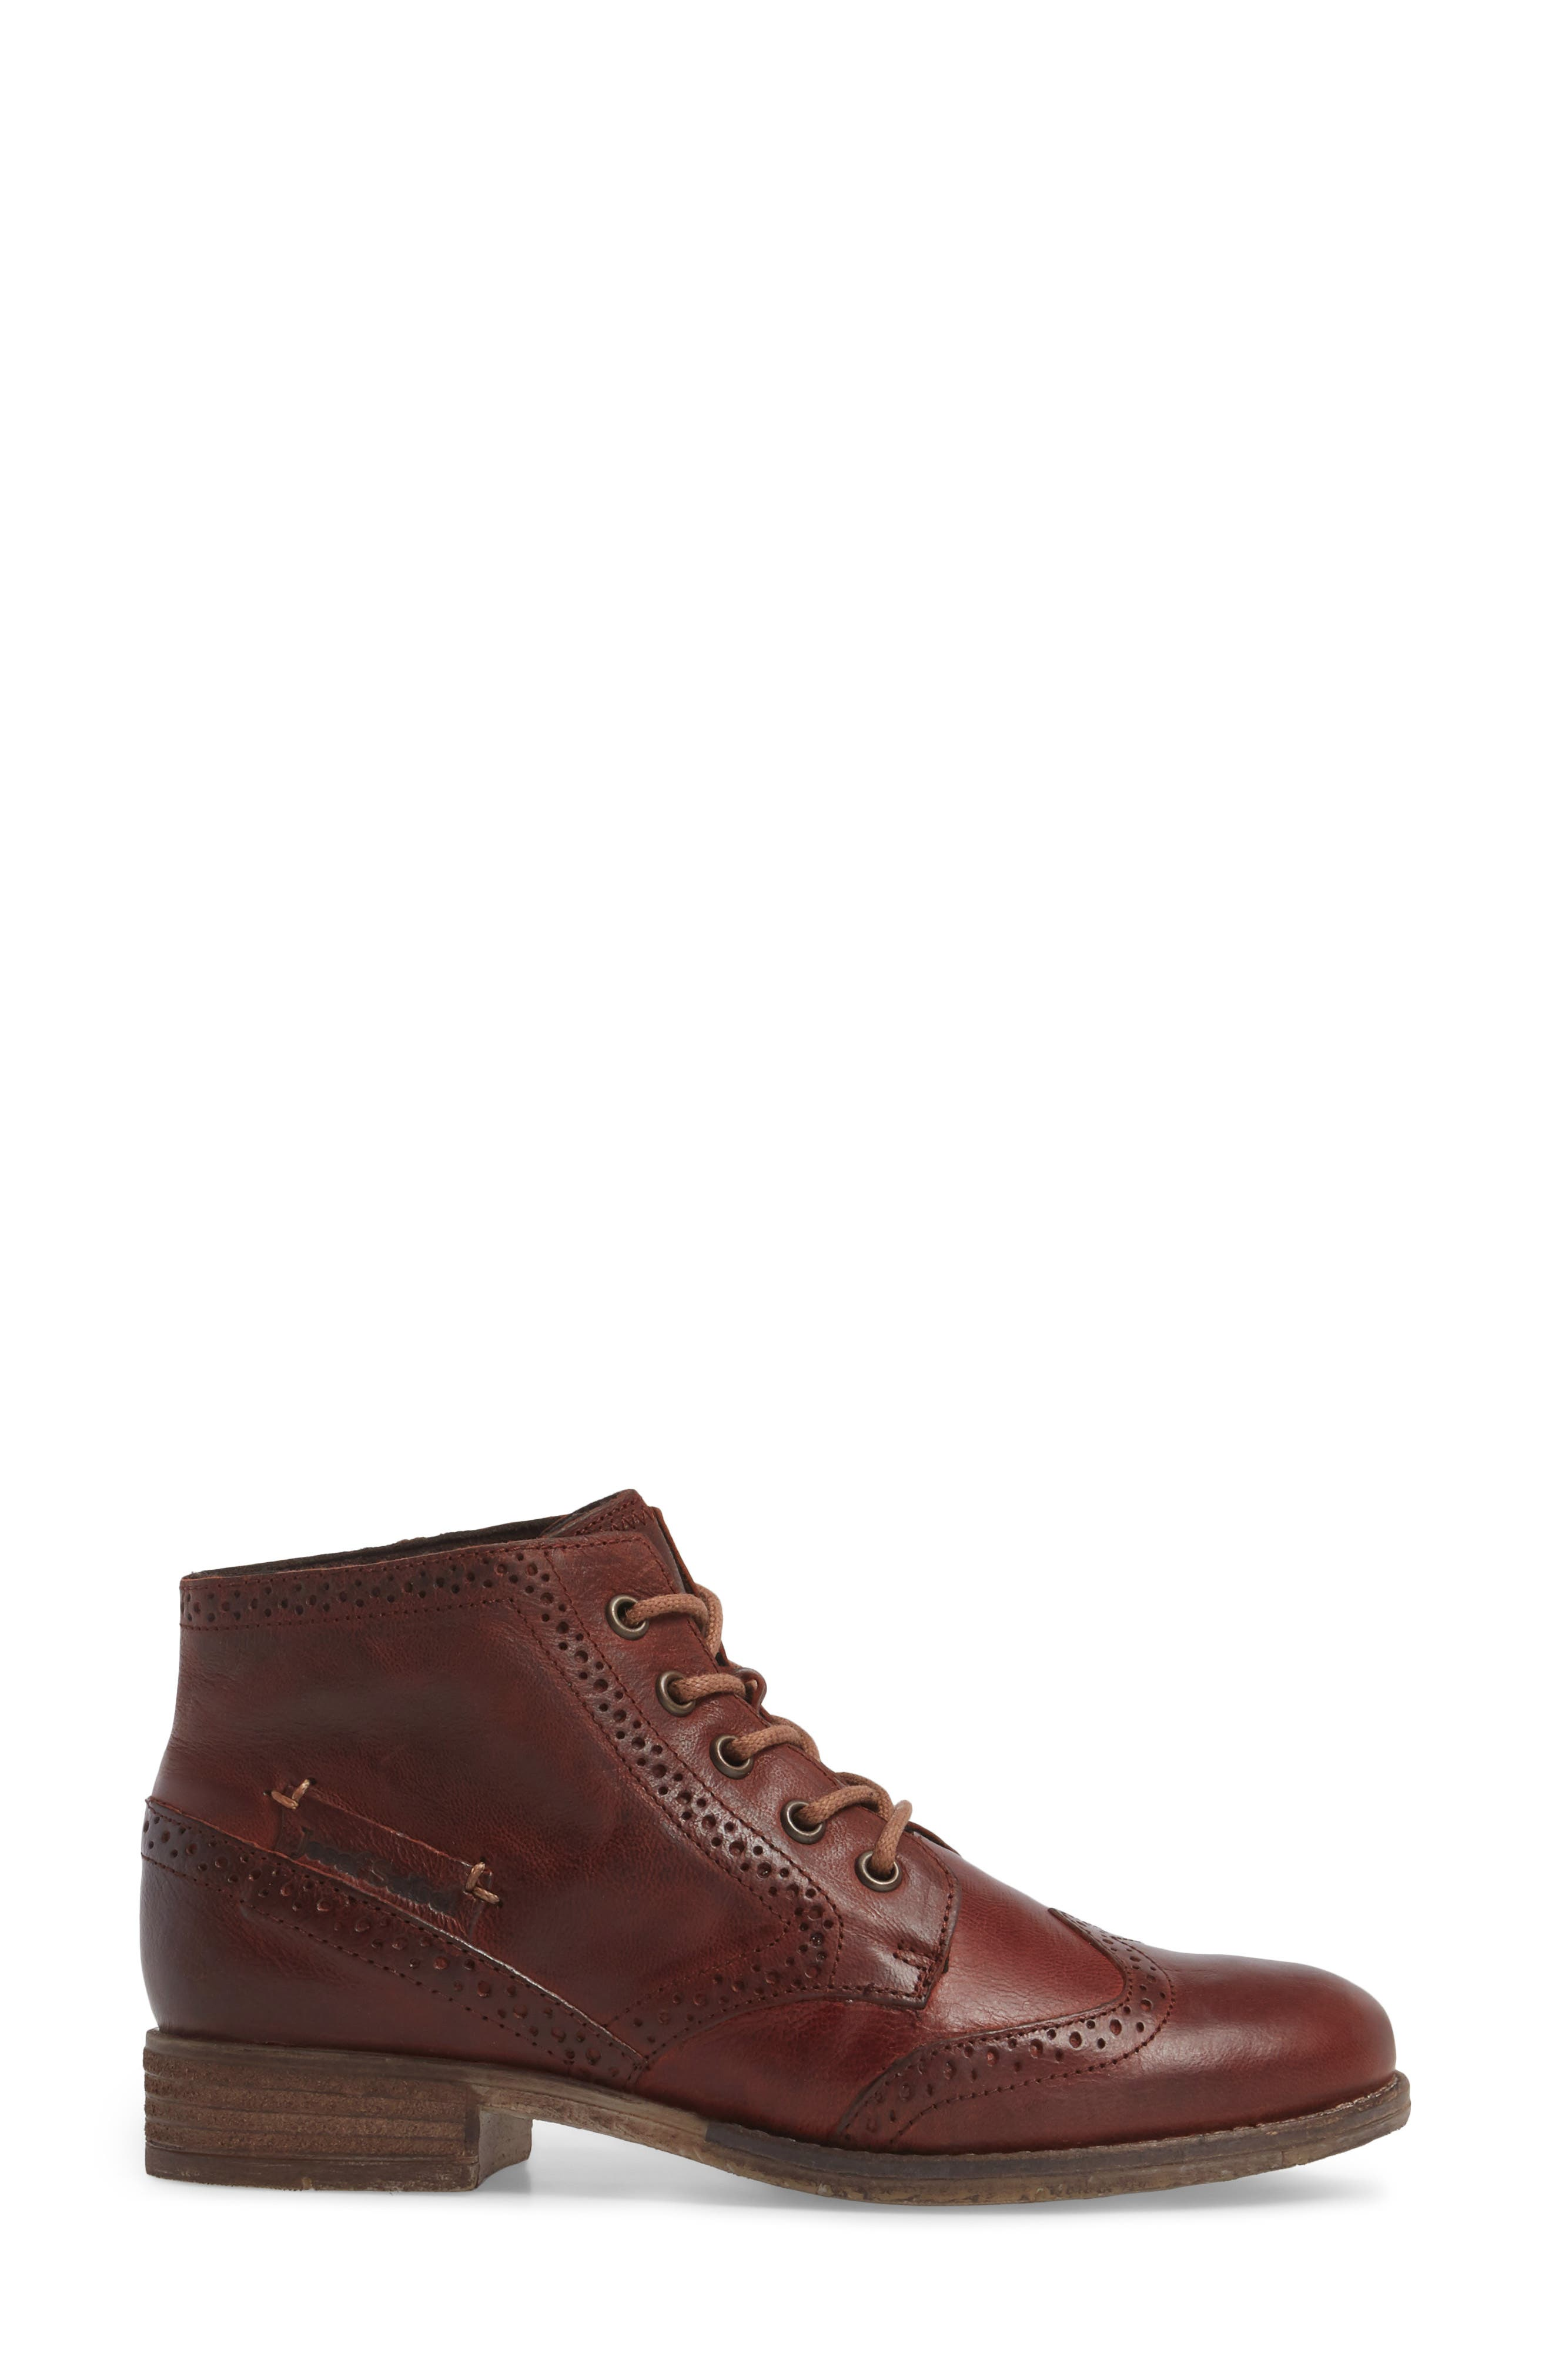 'Sienna 15' Wingtip Bootie,                             Alternate thumbnail 3, color,                             Camel Leather